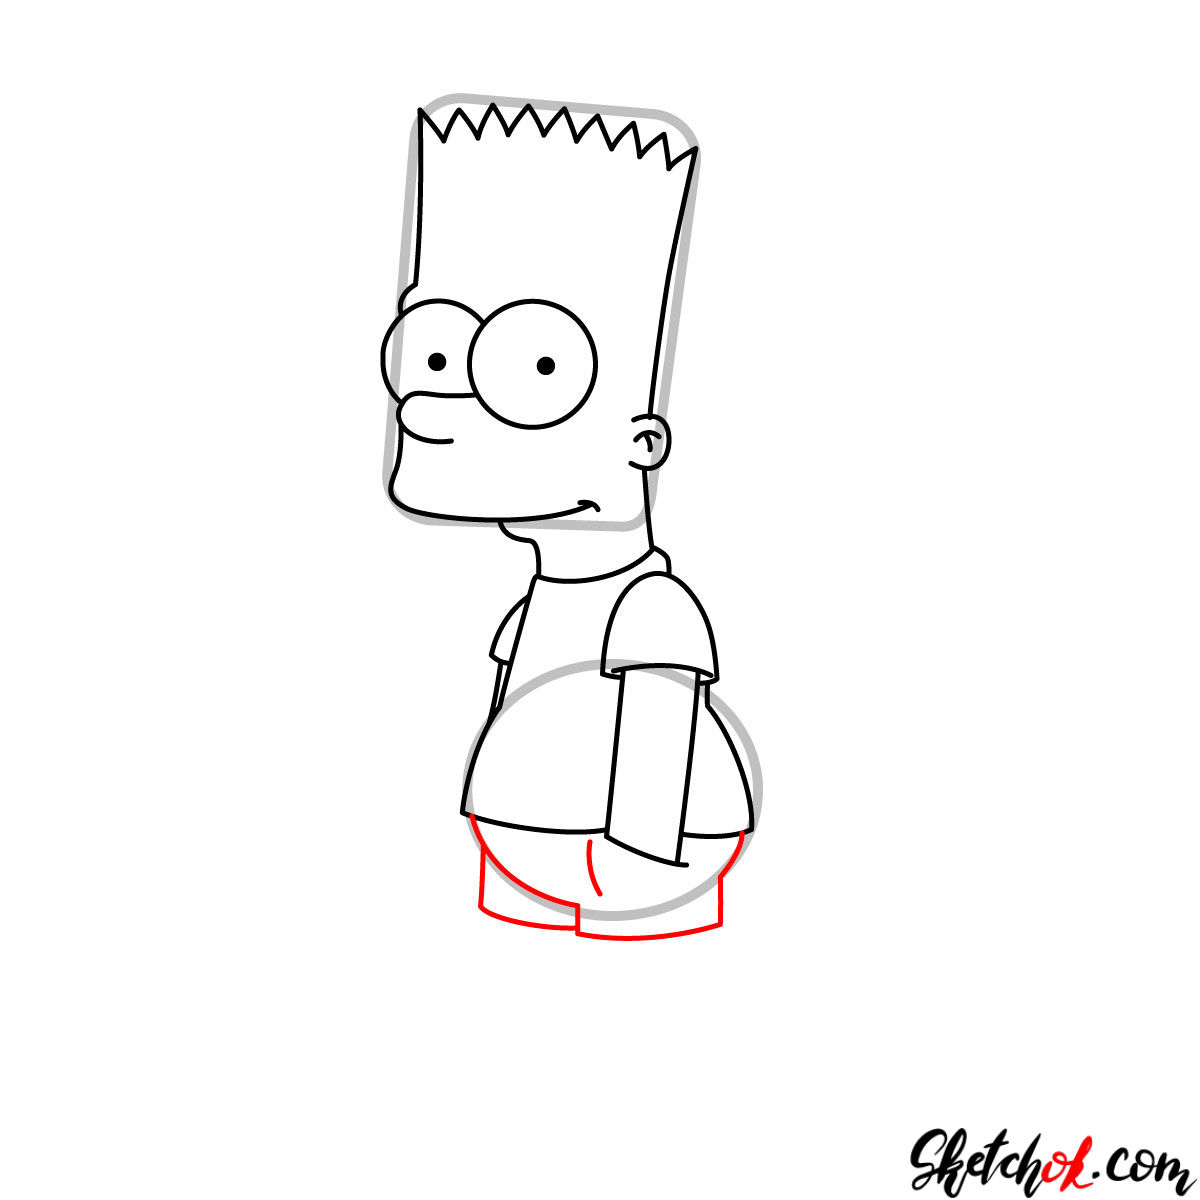 How to draw Bart Simpson - step 07